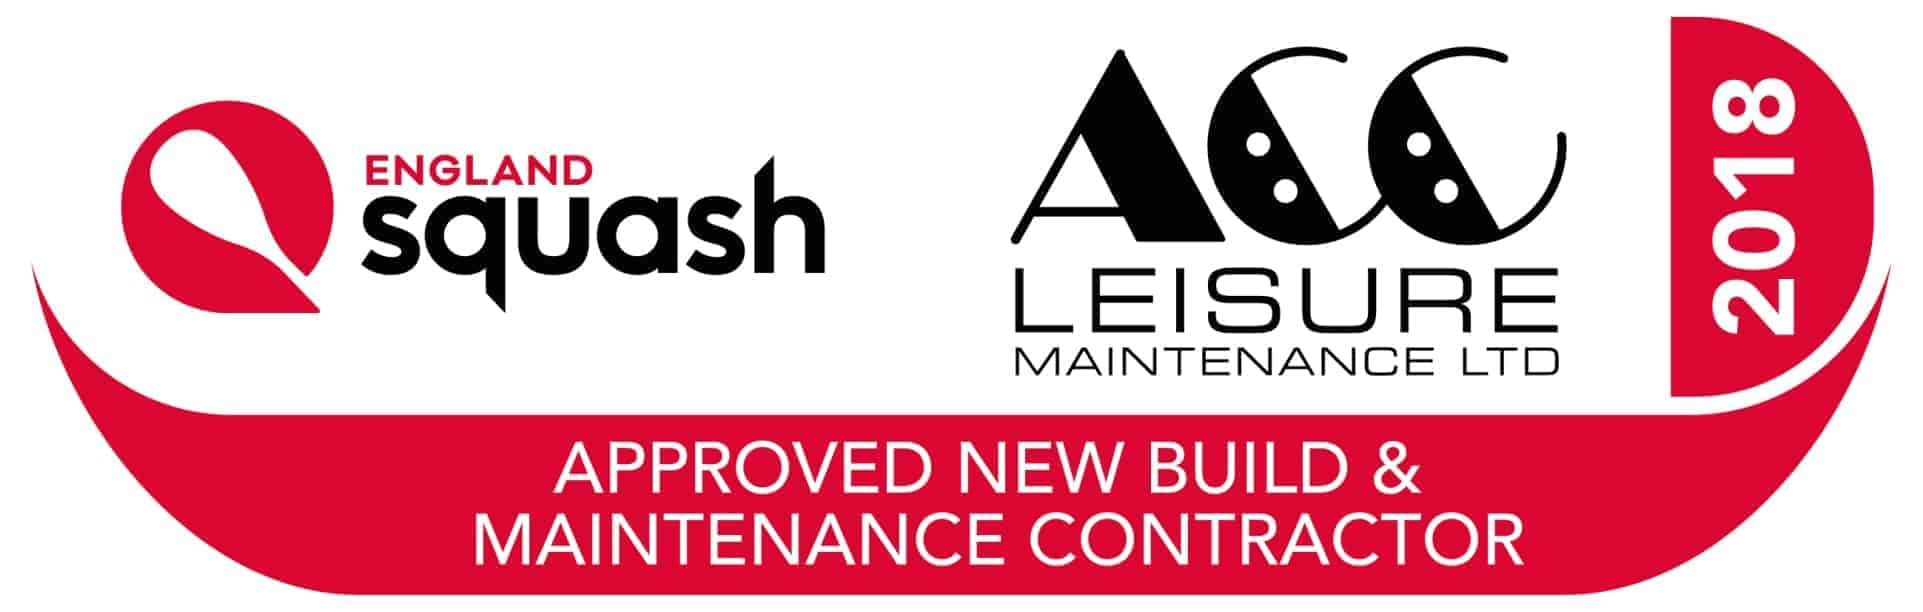 ACC Leisure-ES Approved Court Product-Colour Compressed